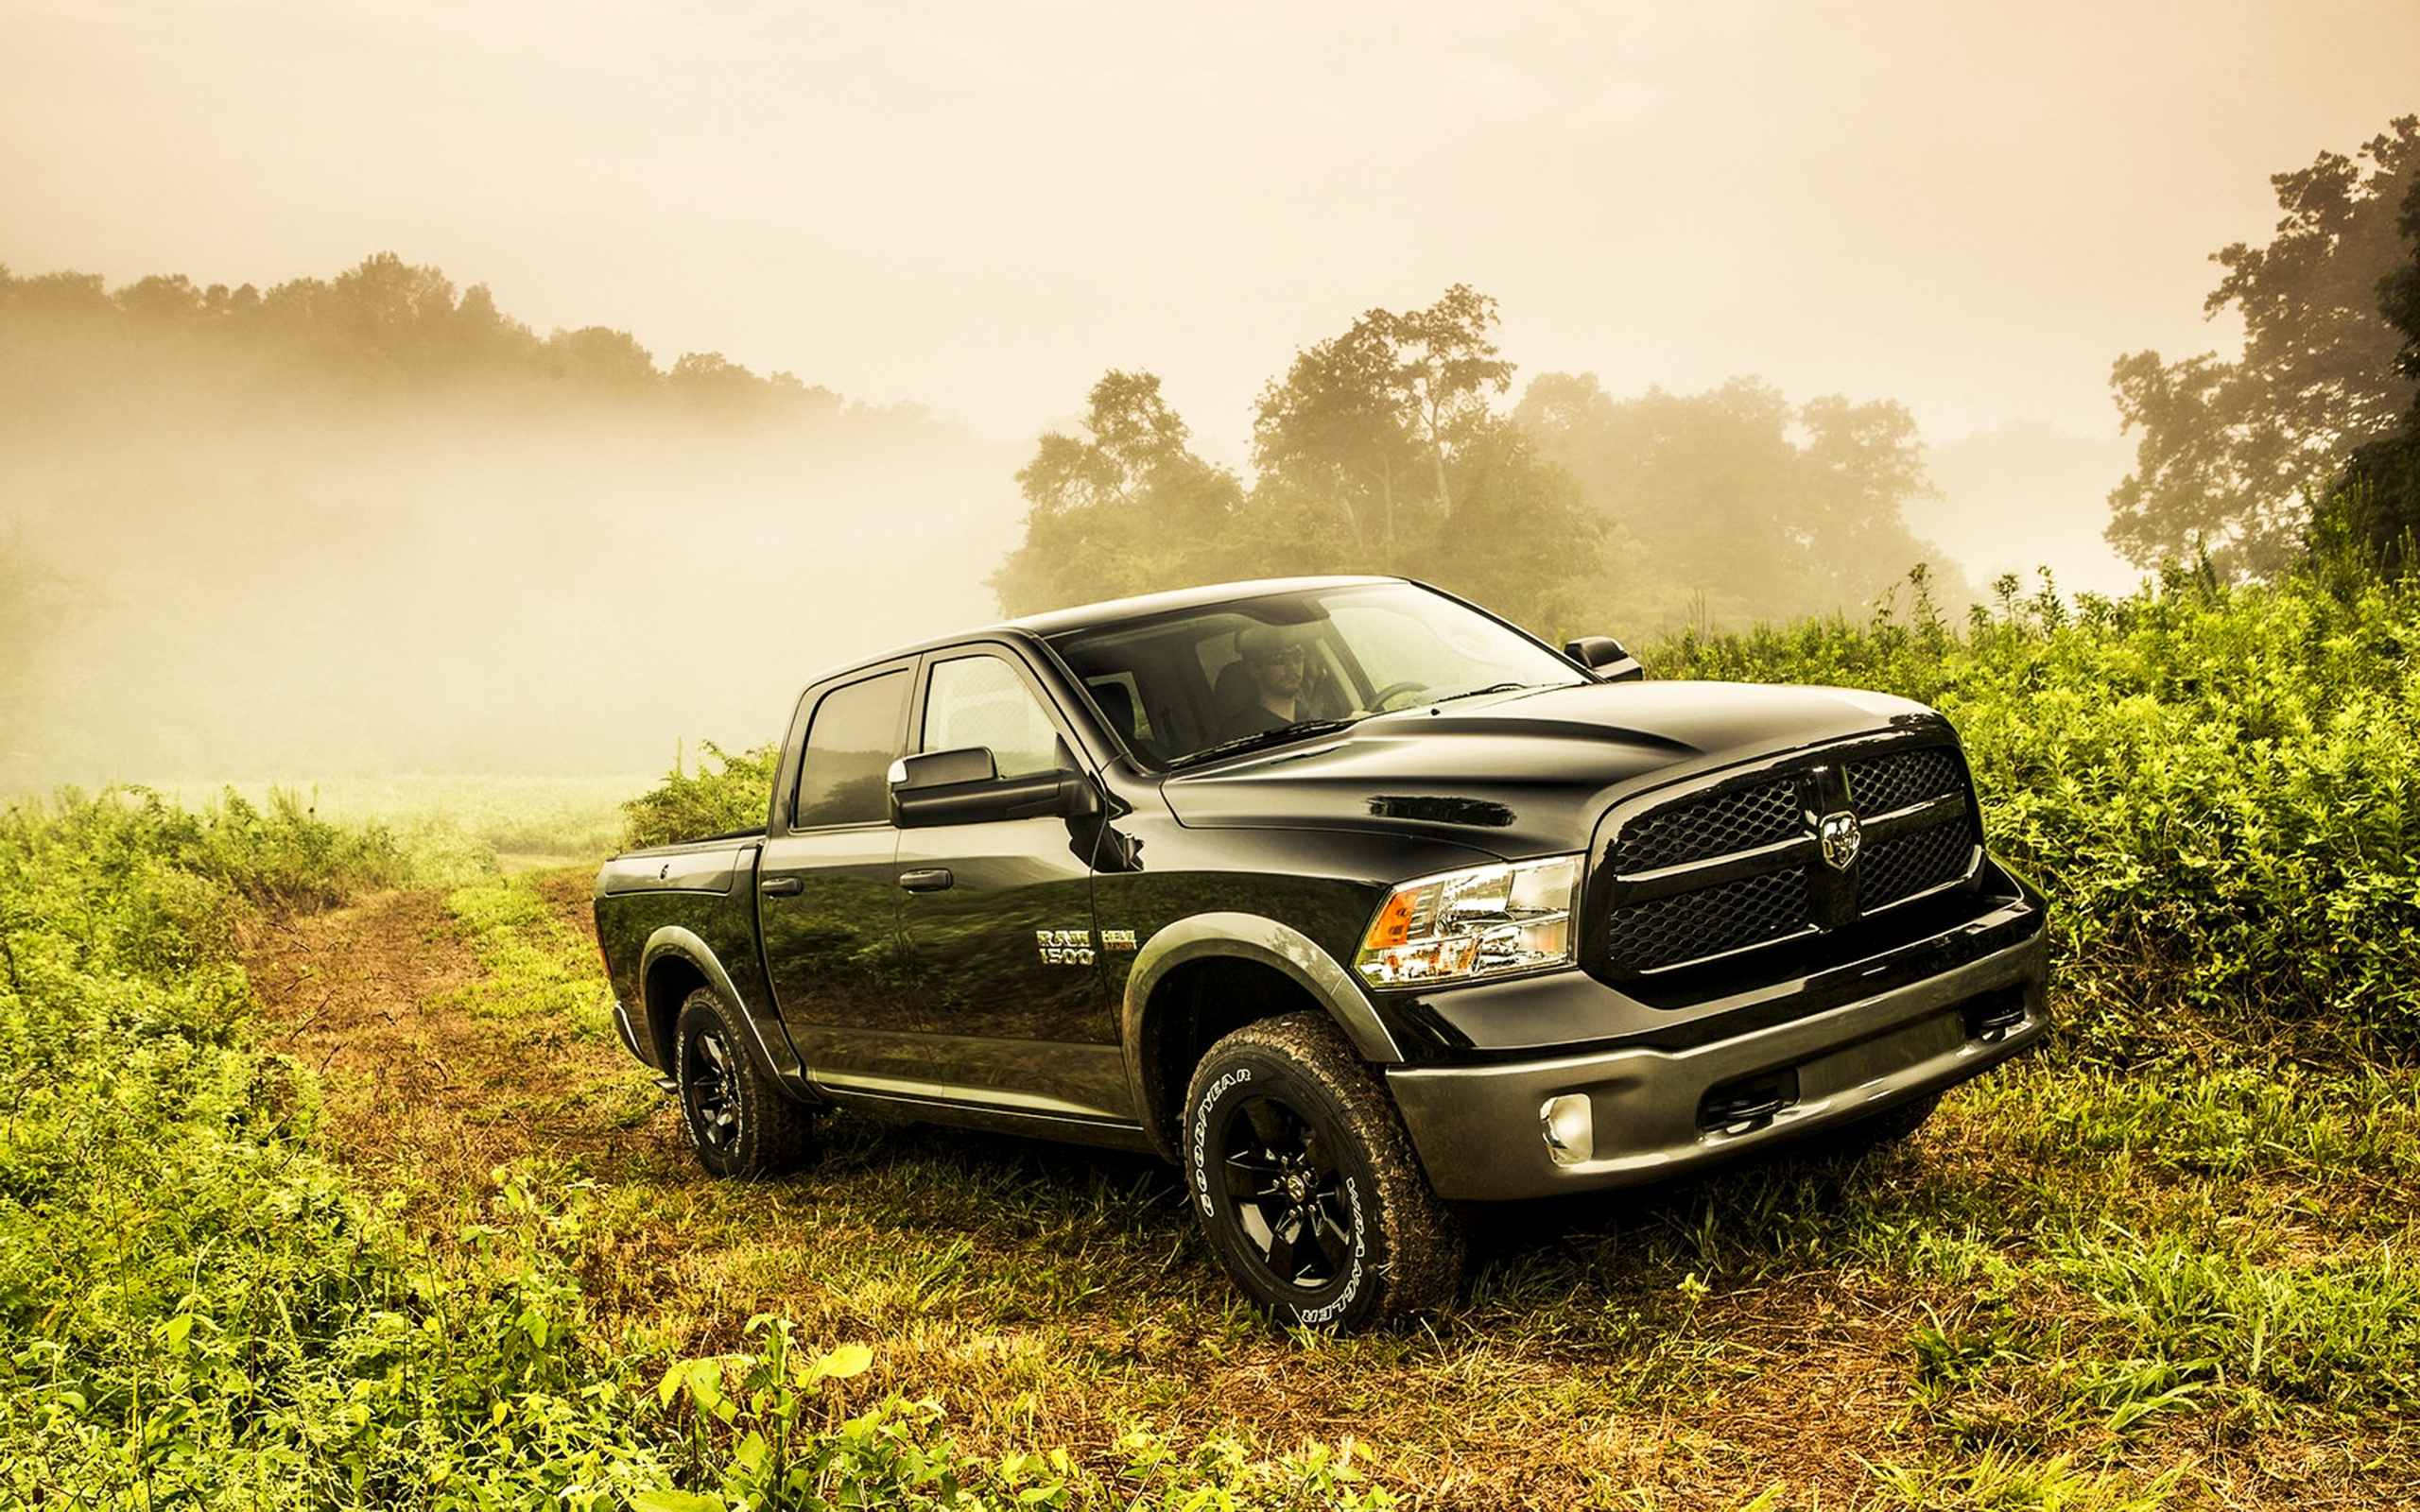 24 dodge ram 1500 hd wallpapers background images. Black Bedroom Furniture Sets. Home Design Ideas